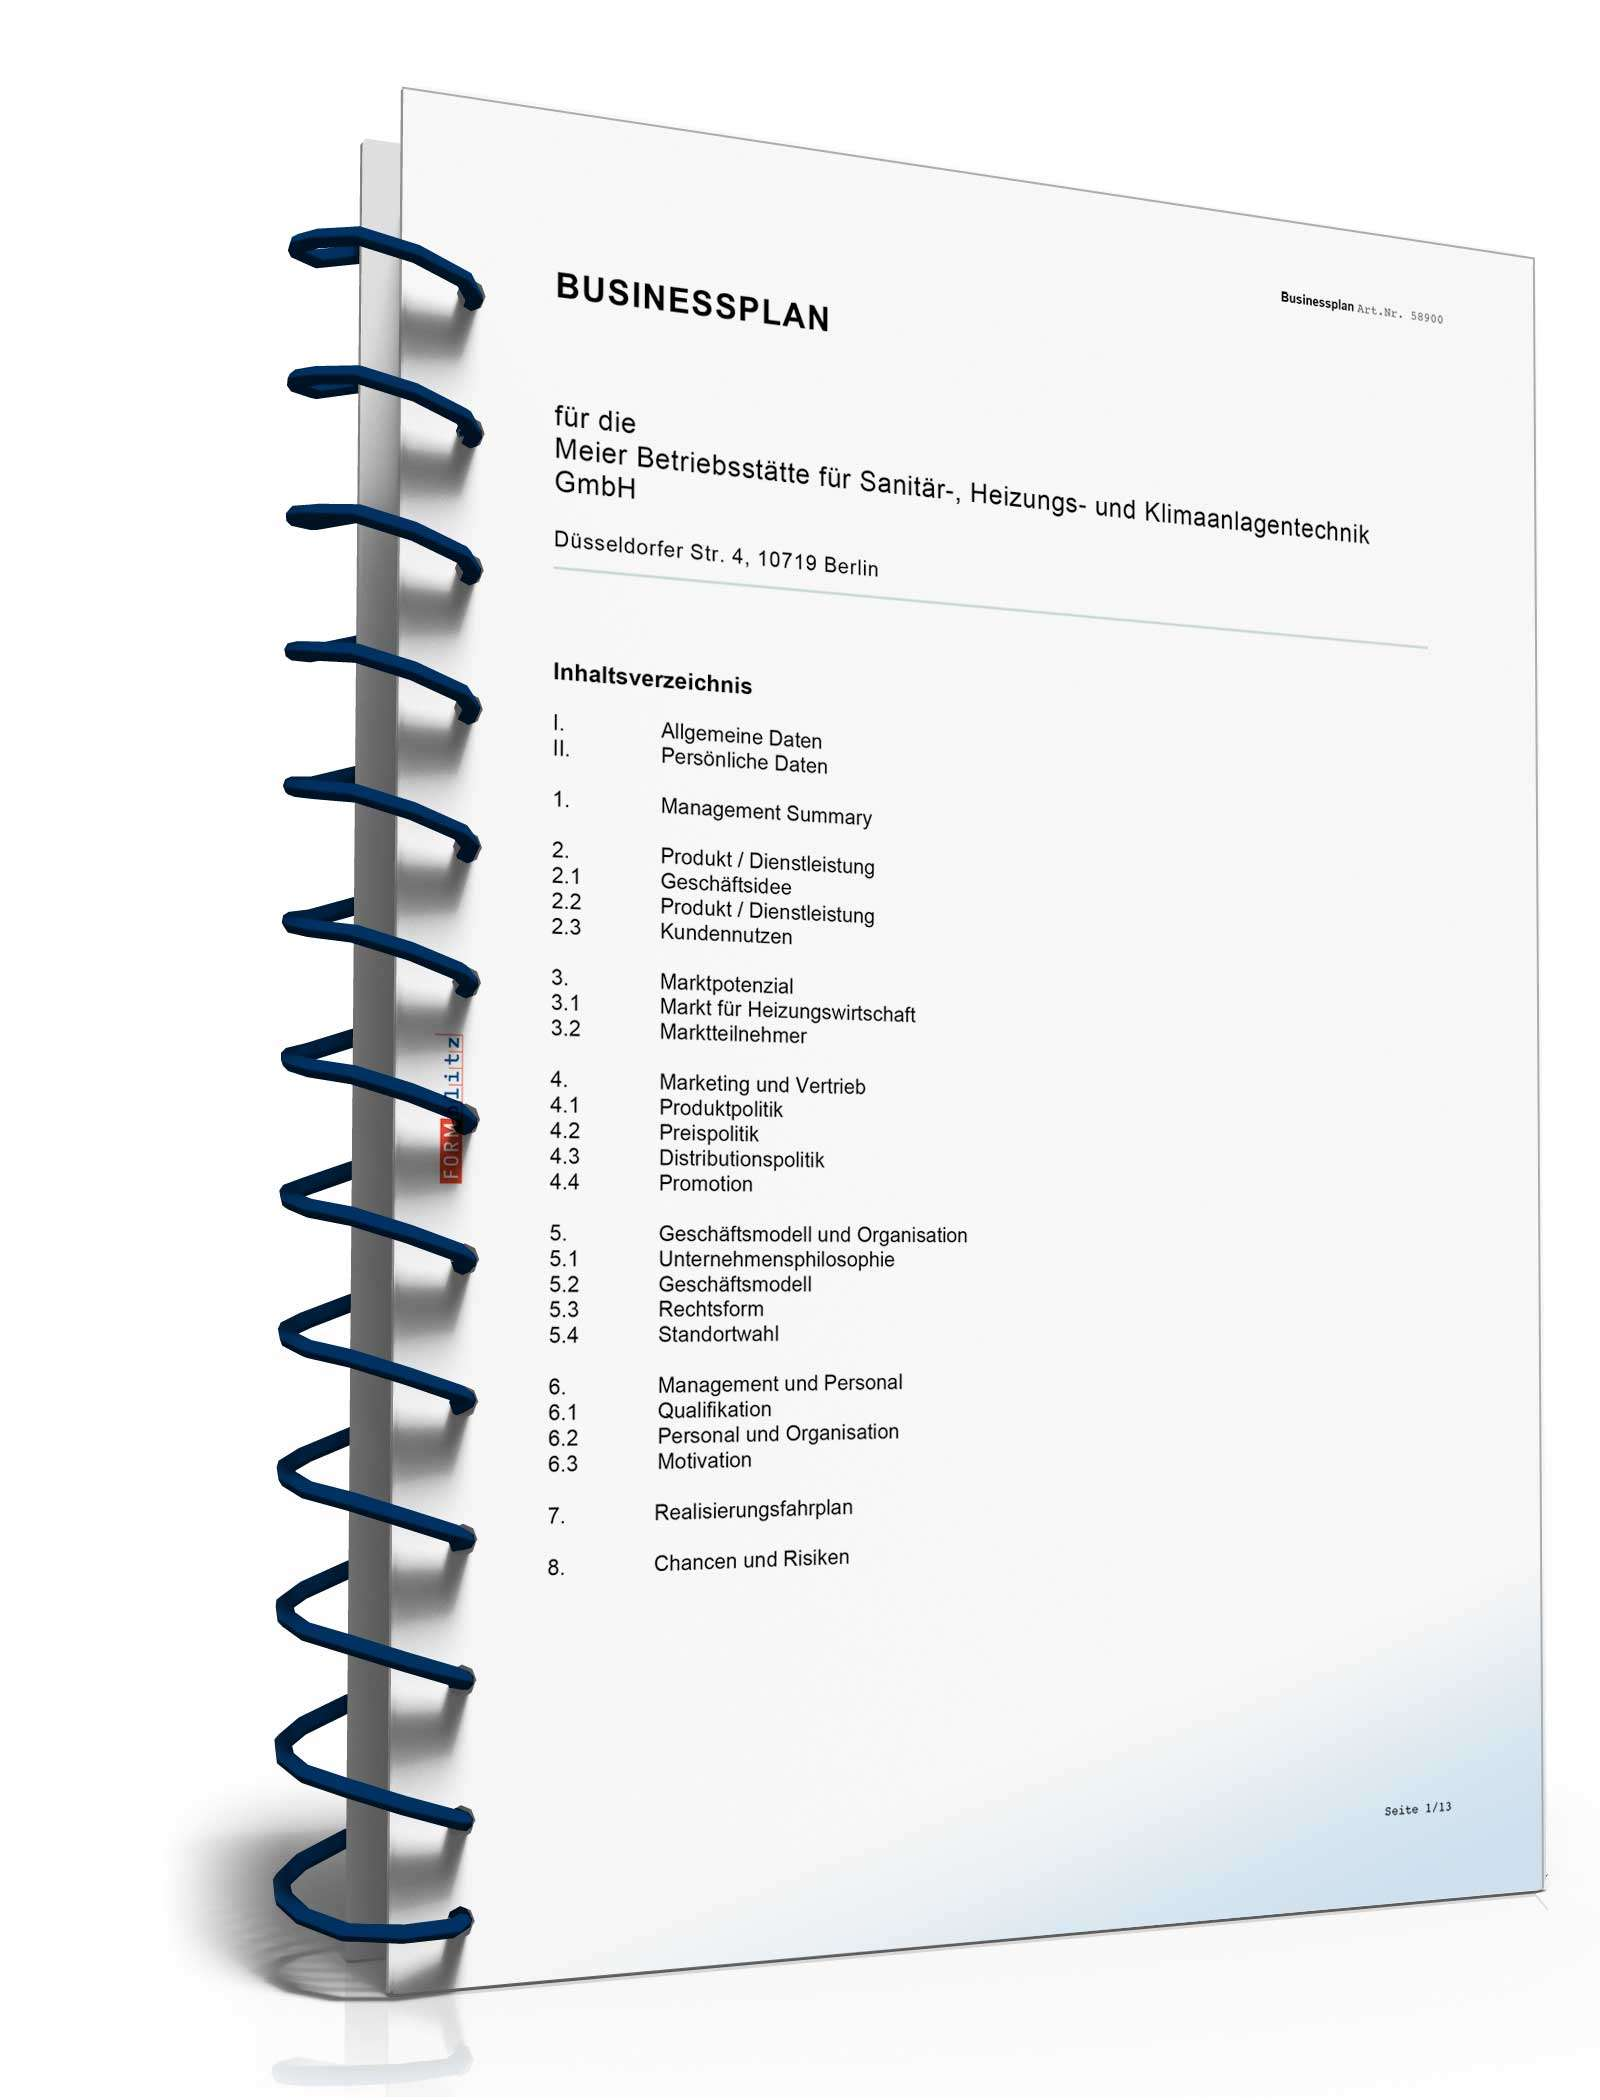 Businessplan Anlagenmechaniker, Inhalt